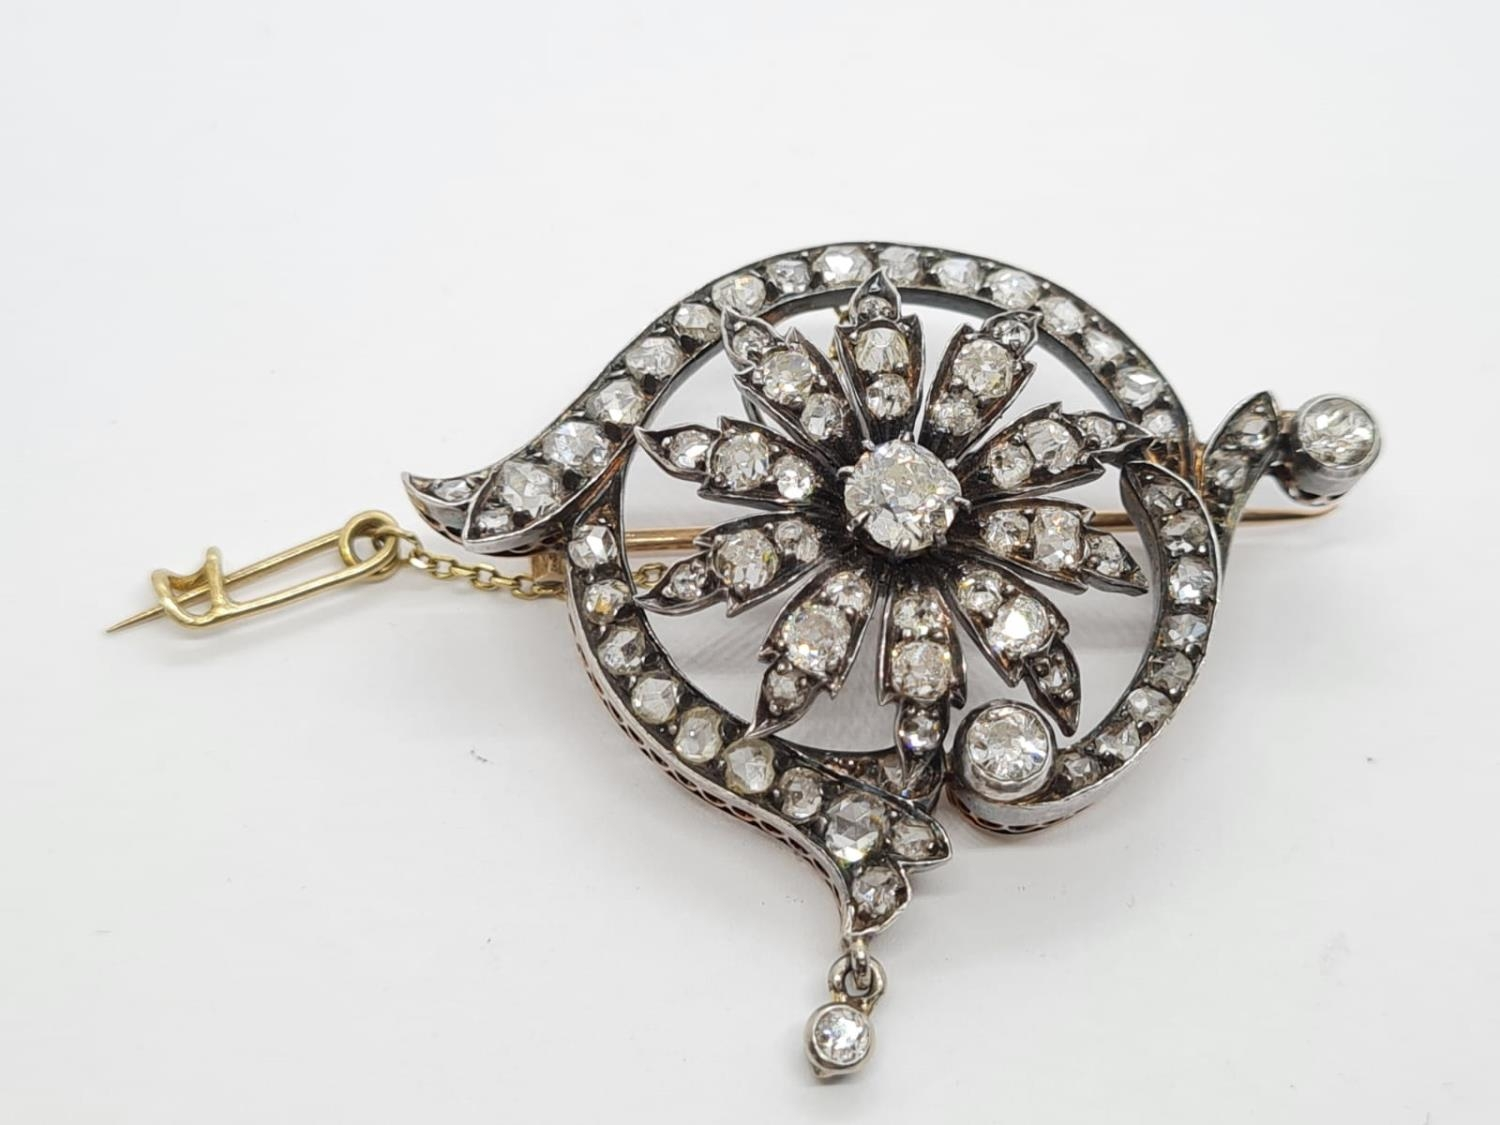 Antique Silver and Gold Diamond BROOCH with 4 ct of top quality Diamonds. 12g 4.5cm width